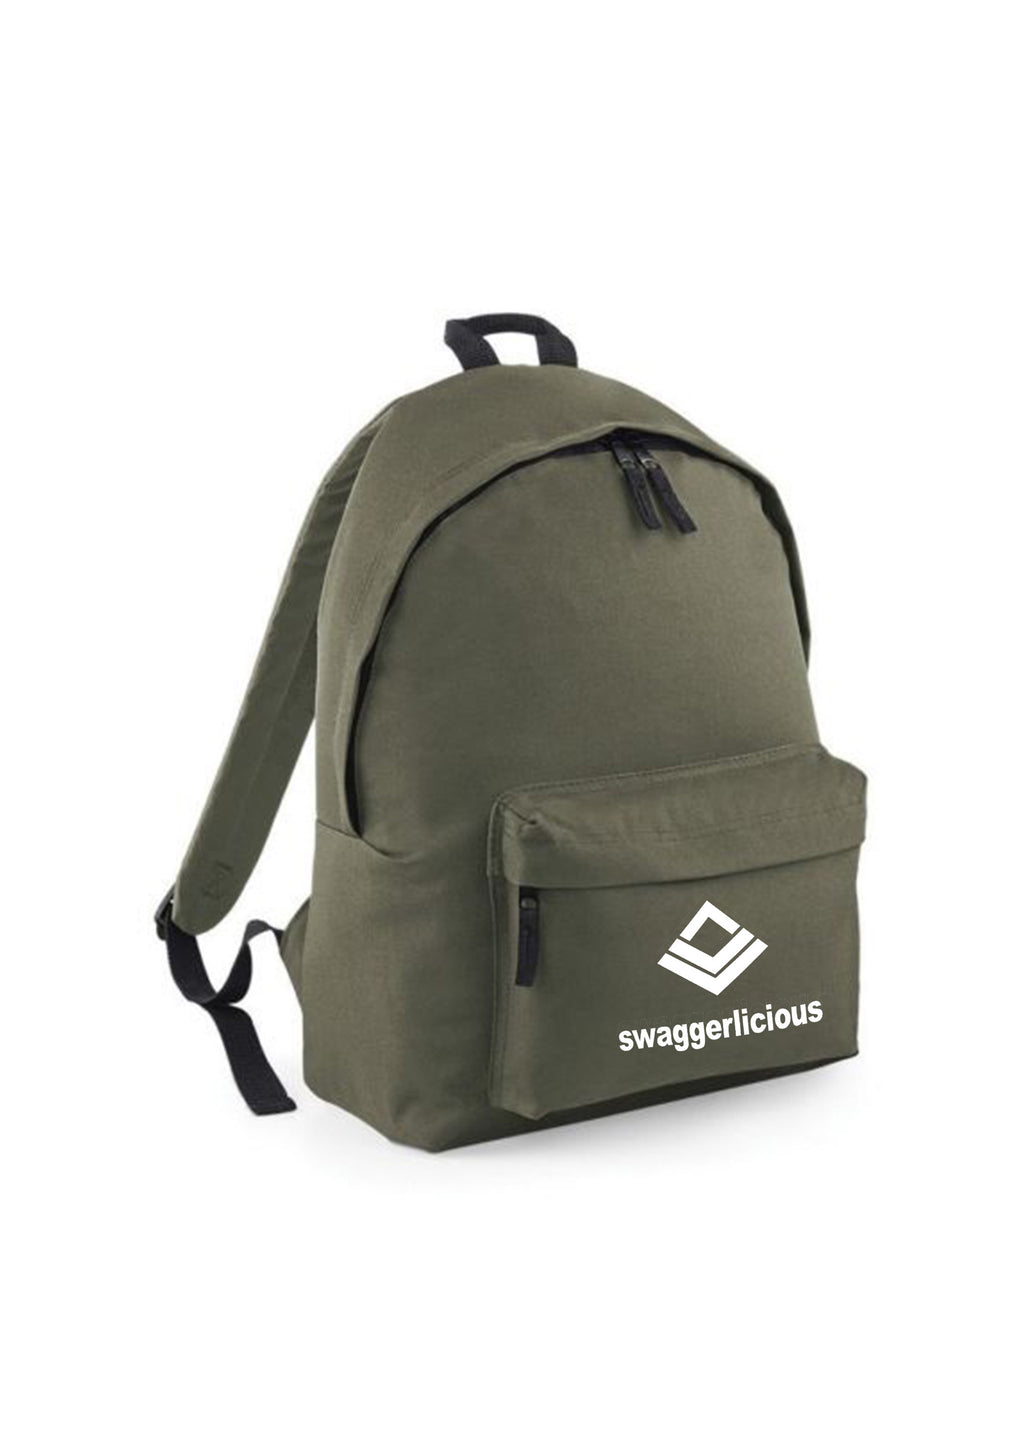 OLIVE GREEN SWAGGERLICIOUS BACKPACK - swaggerlicious-clothing.com